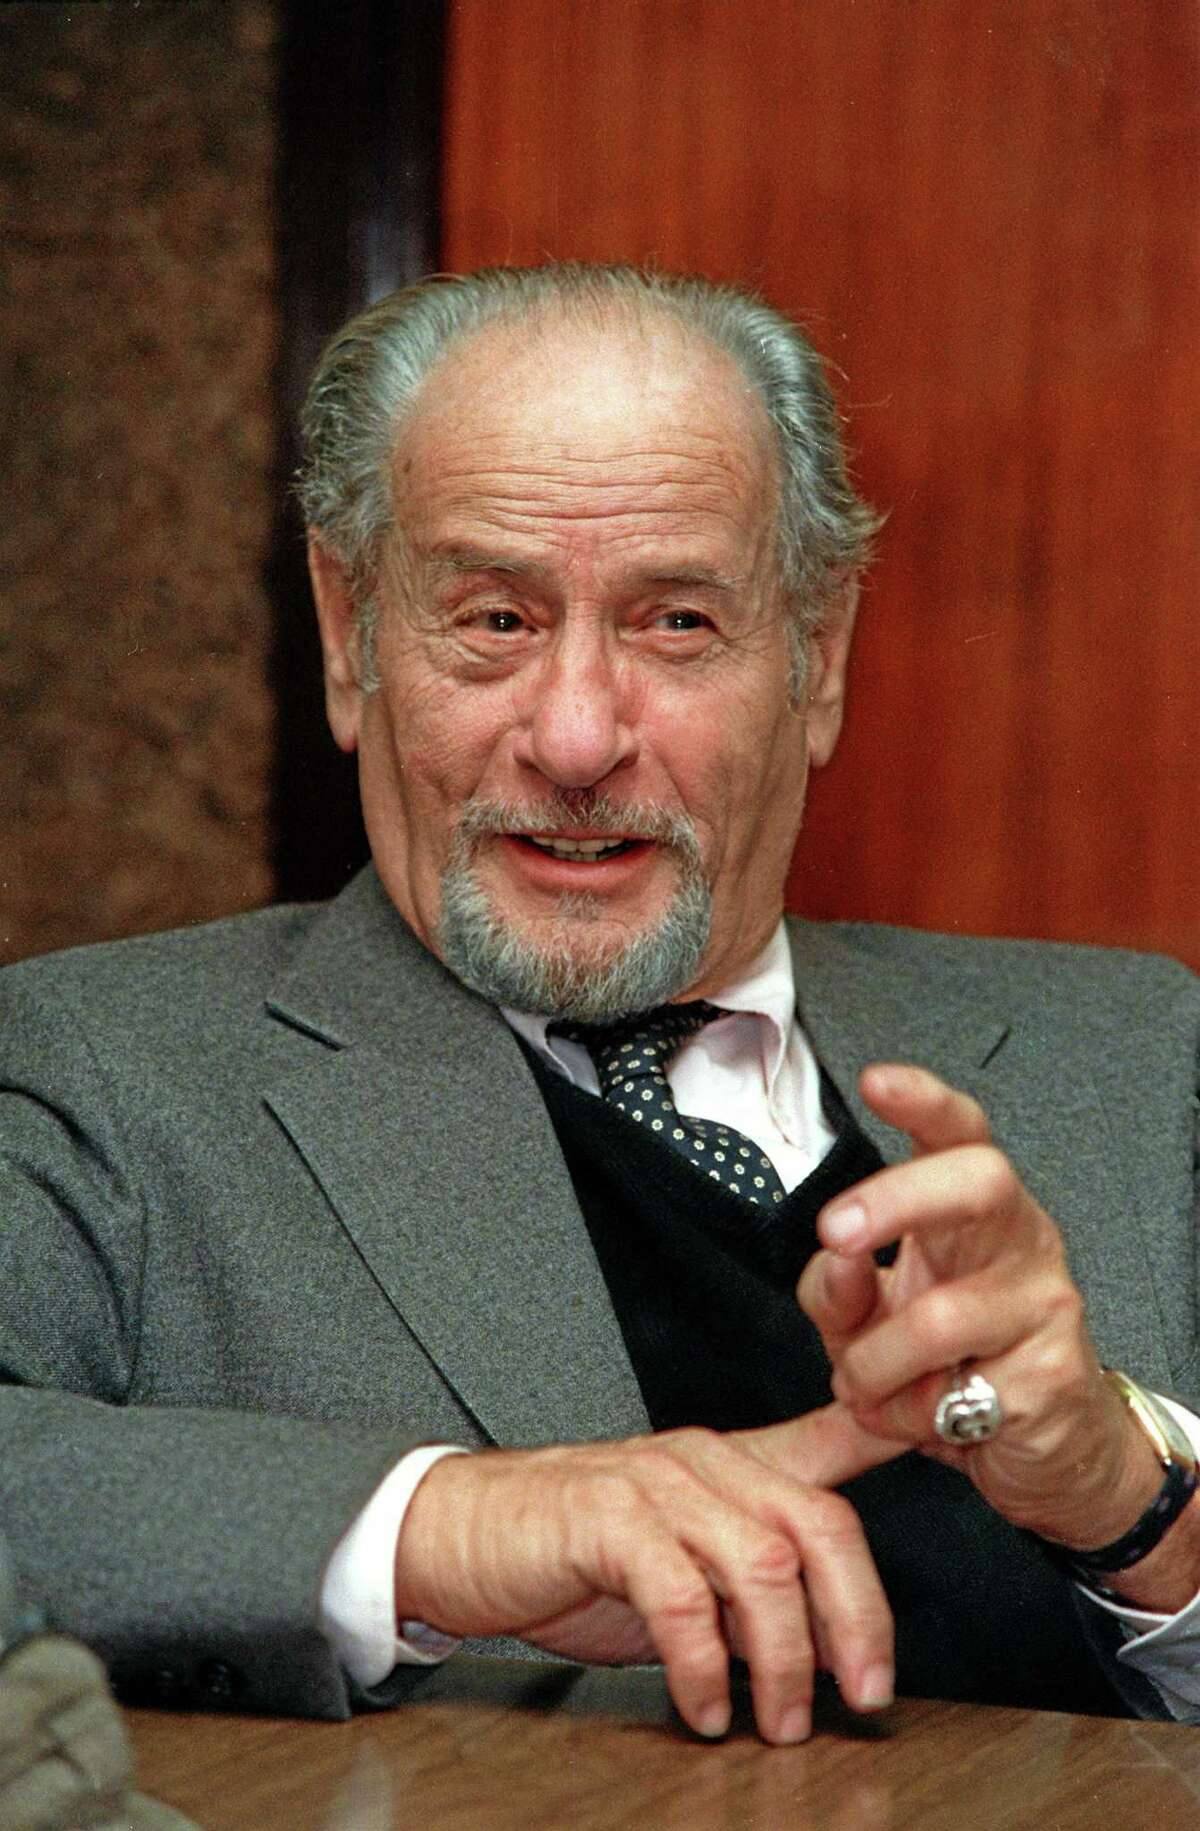 This Nov. 1987 file photo shows actor Eli Wallach speaking during an interview in New York. Wallach, the raspy-voiced character actor who starred in dozens of movies and Broadway plays over a remarkable and enduring career, died Monday, June 23, 2014 of natural causes. He was 98. (AP Photo/Marty Lederhandler, File)